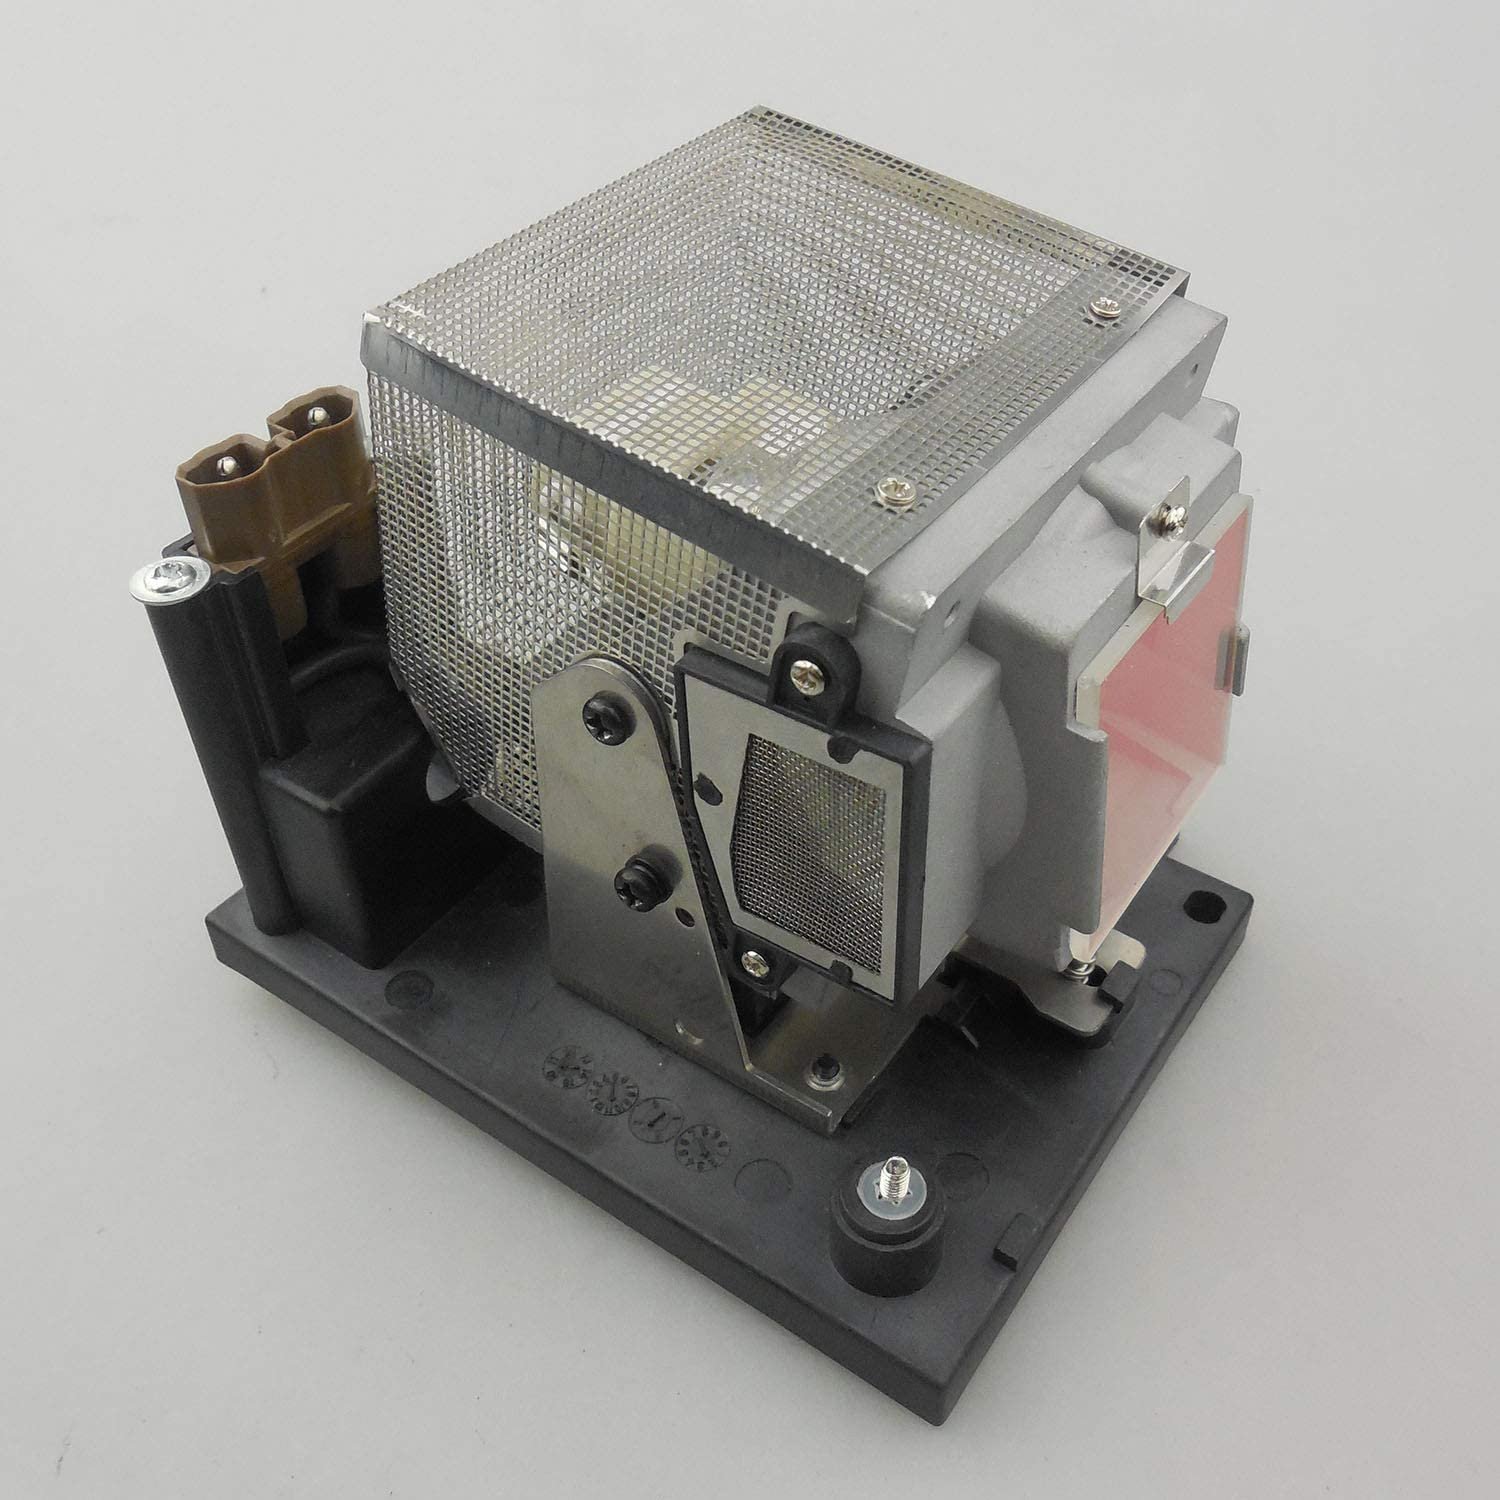 CTLAMP Professional AN-P610LP Replacement Lamp Bulb with Housing AN-P610LP Compatible with Sharp XG-P560W XG-P610X XG-P560WN XG-P610XN XG-P560WA